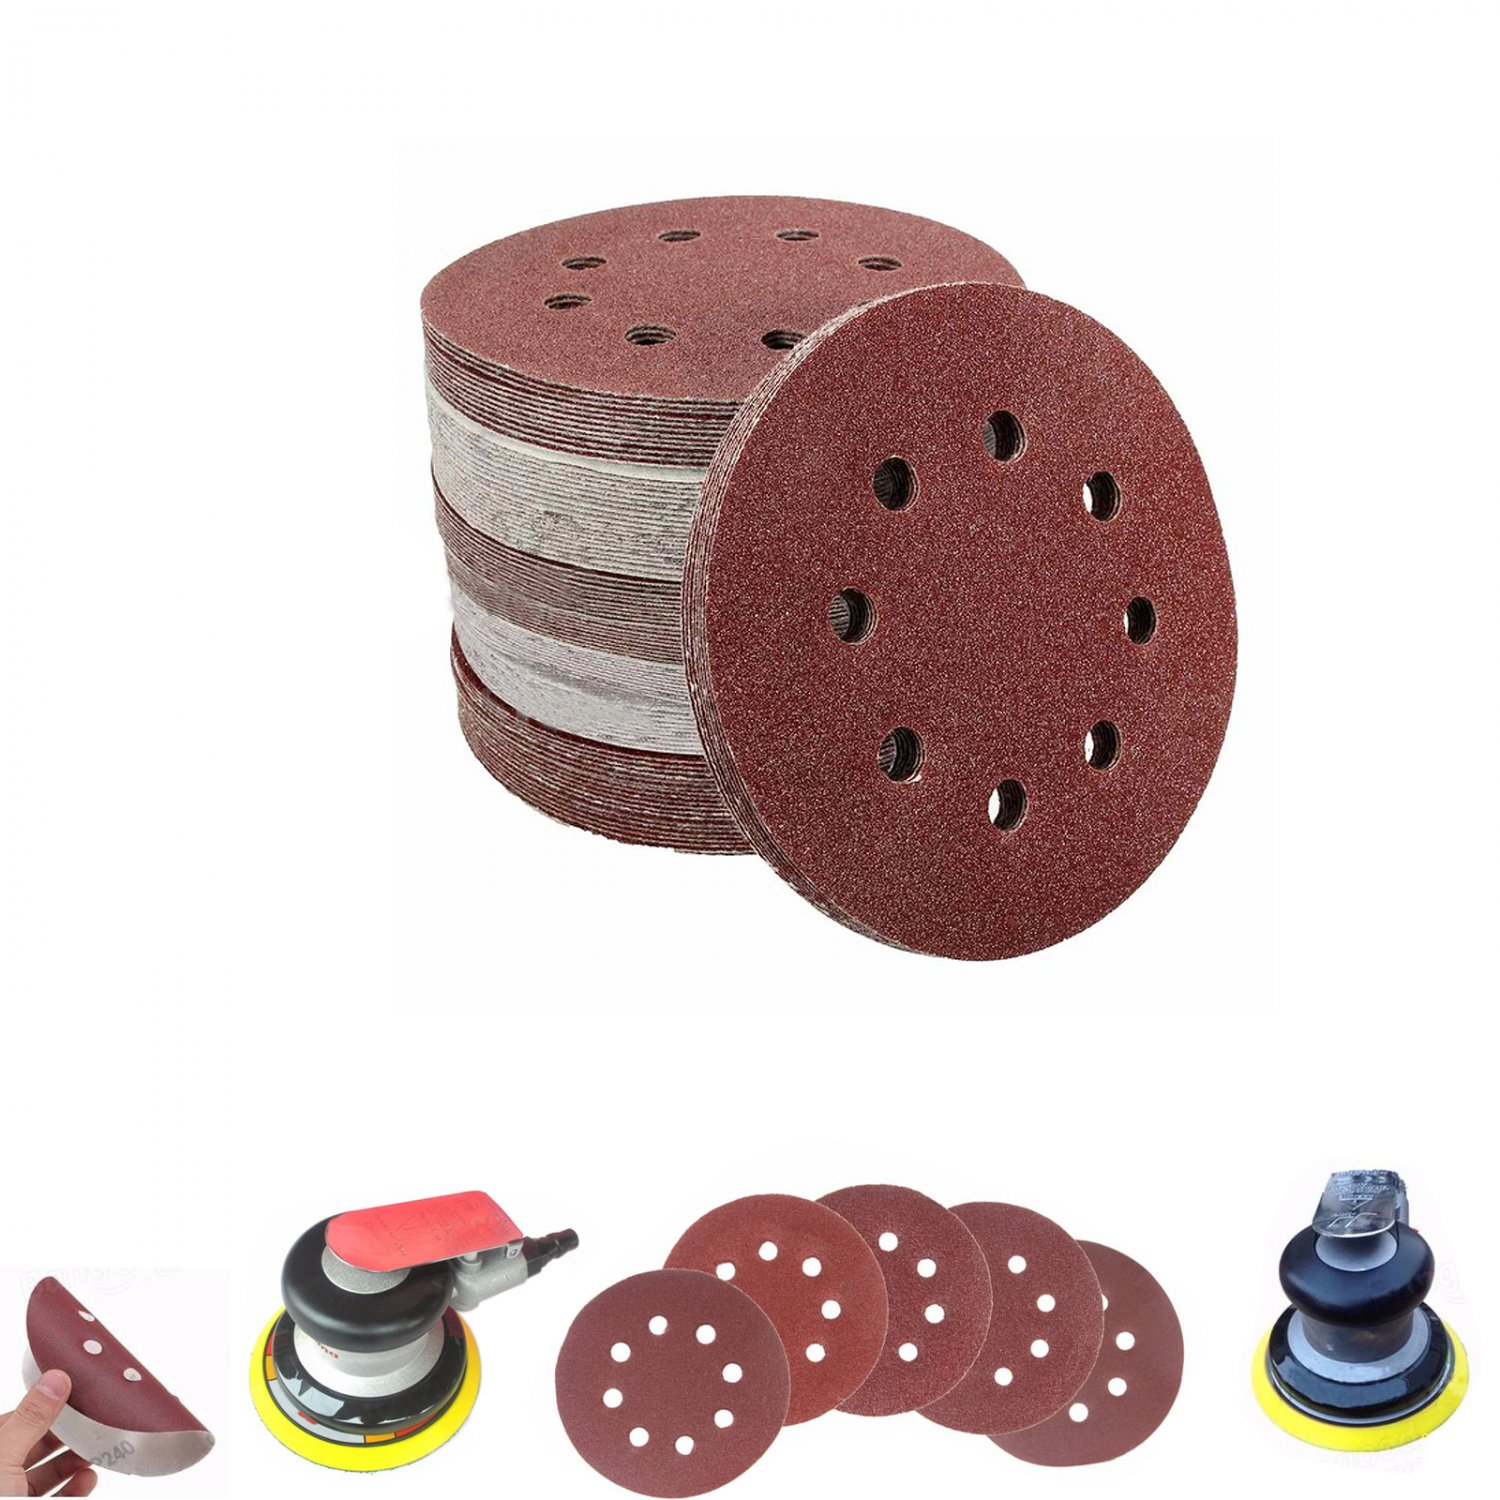 Sanding Discs Abrasive Sand Paper Pads 50 Pack 8 Hole 125mm Dia Assorted Grit Hown store